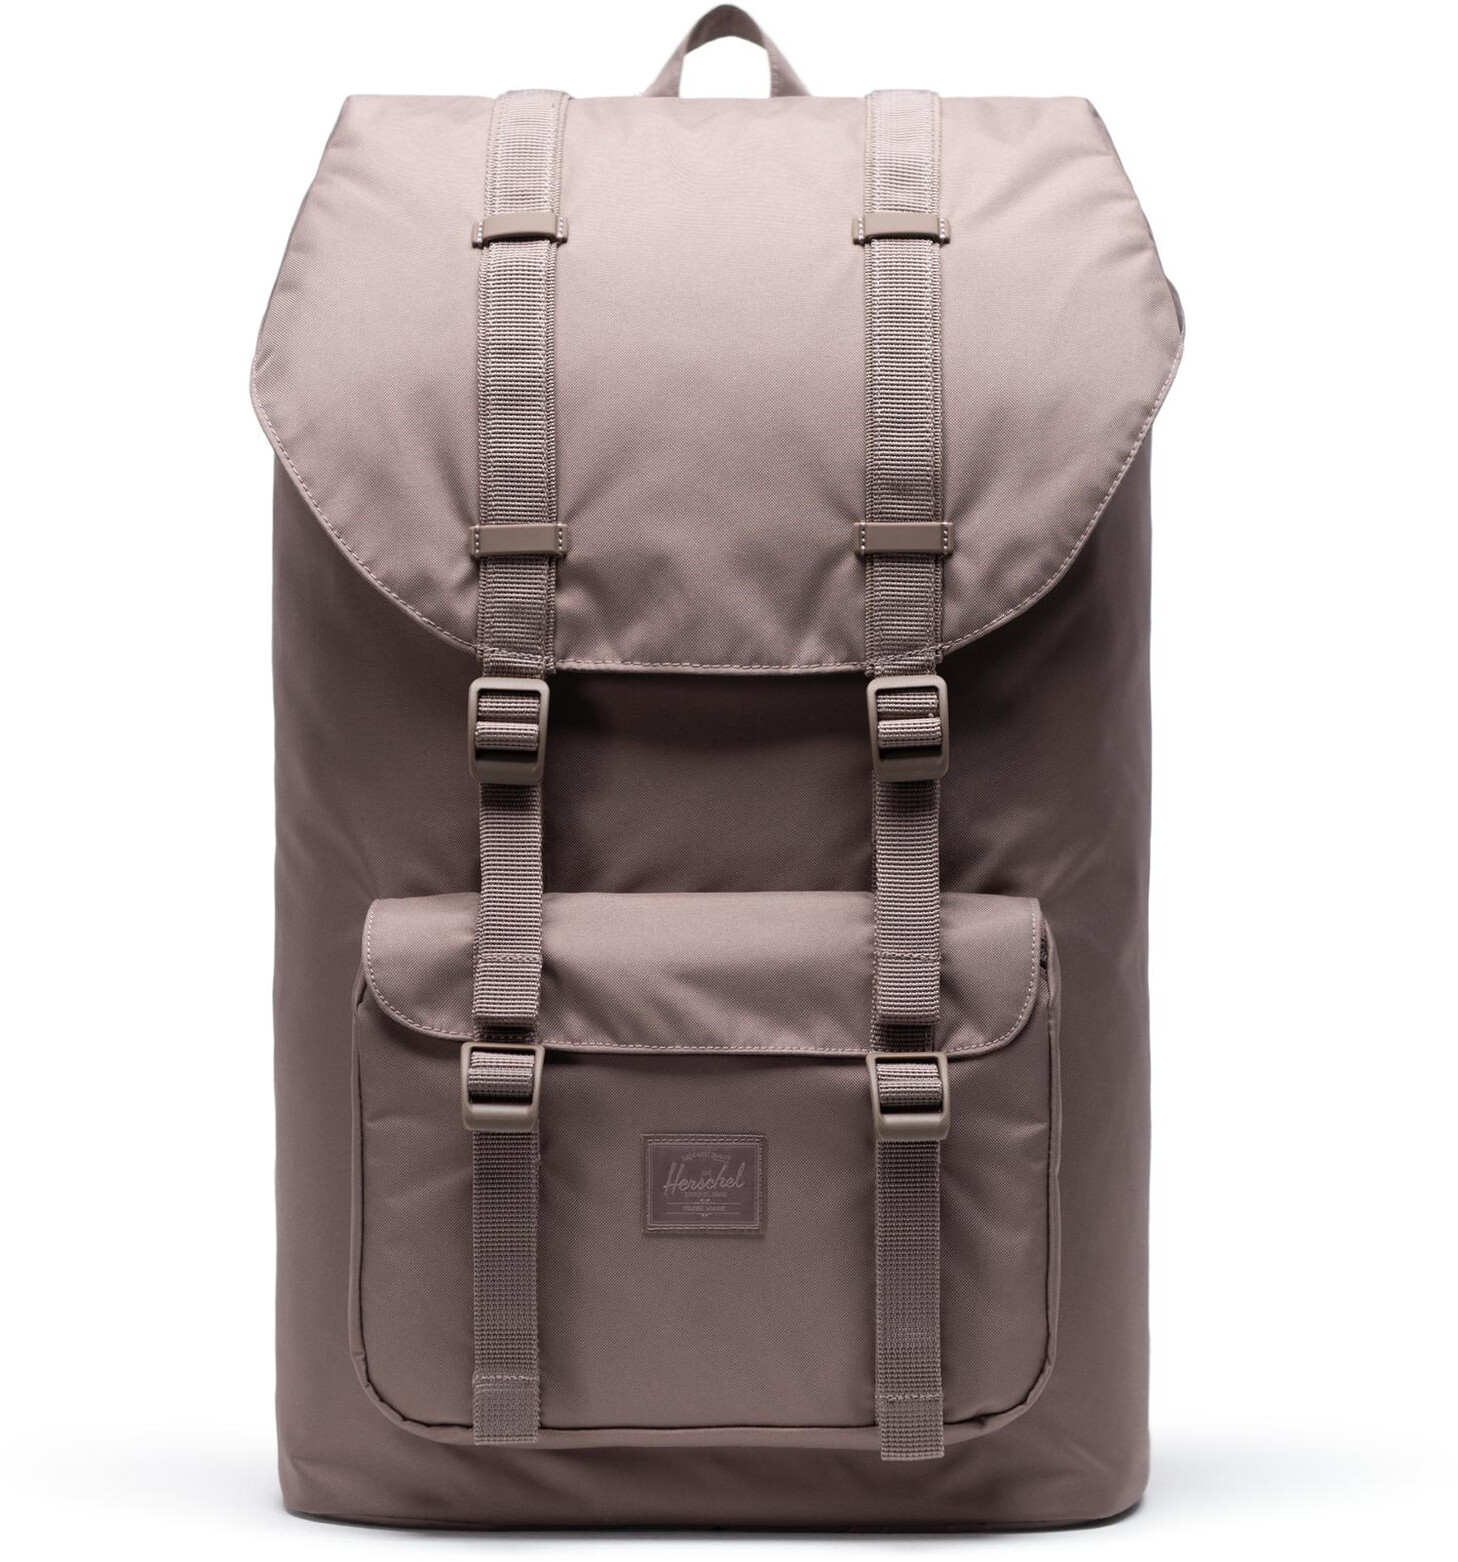 Herschel Little America Light Rygsæk 25l, pine bark (2019) | Travel bags